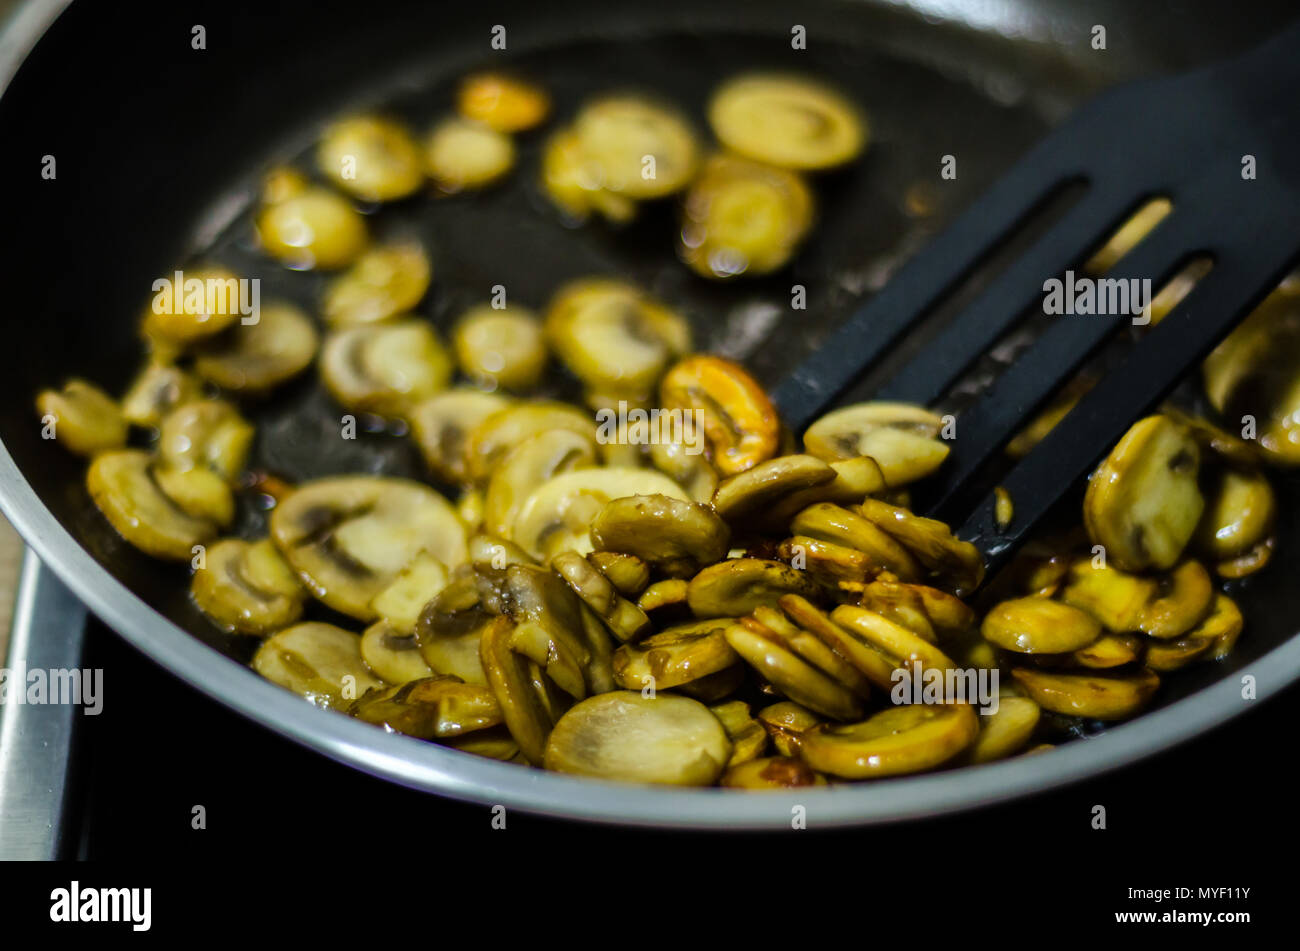 sliced mushrooms fried in butter in a pan, vegetarian dish, healthy snack - Stock Image